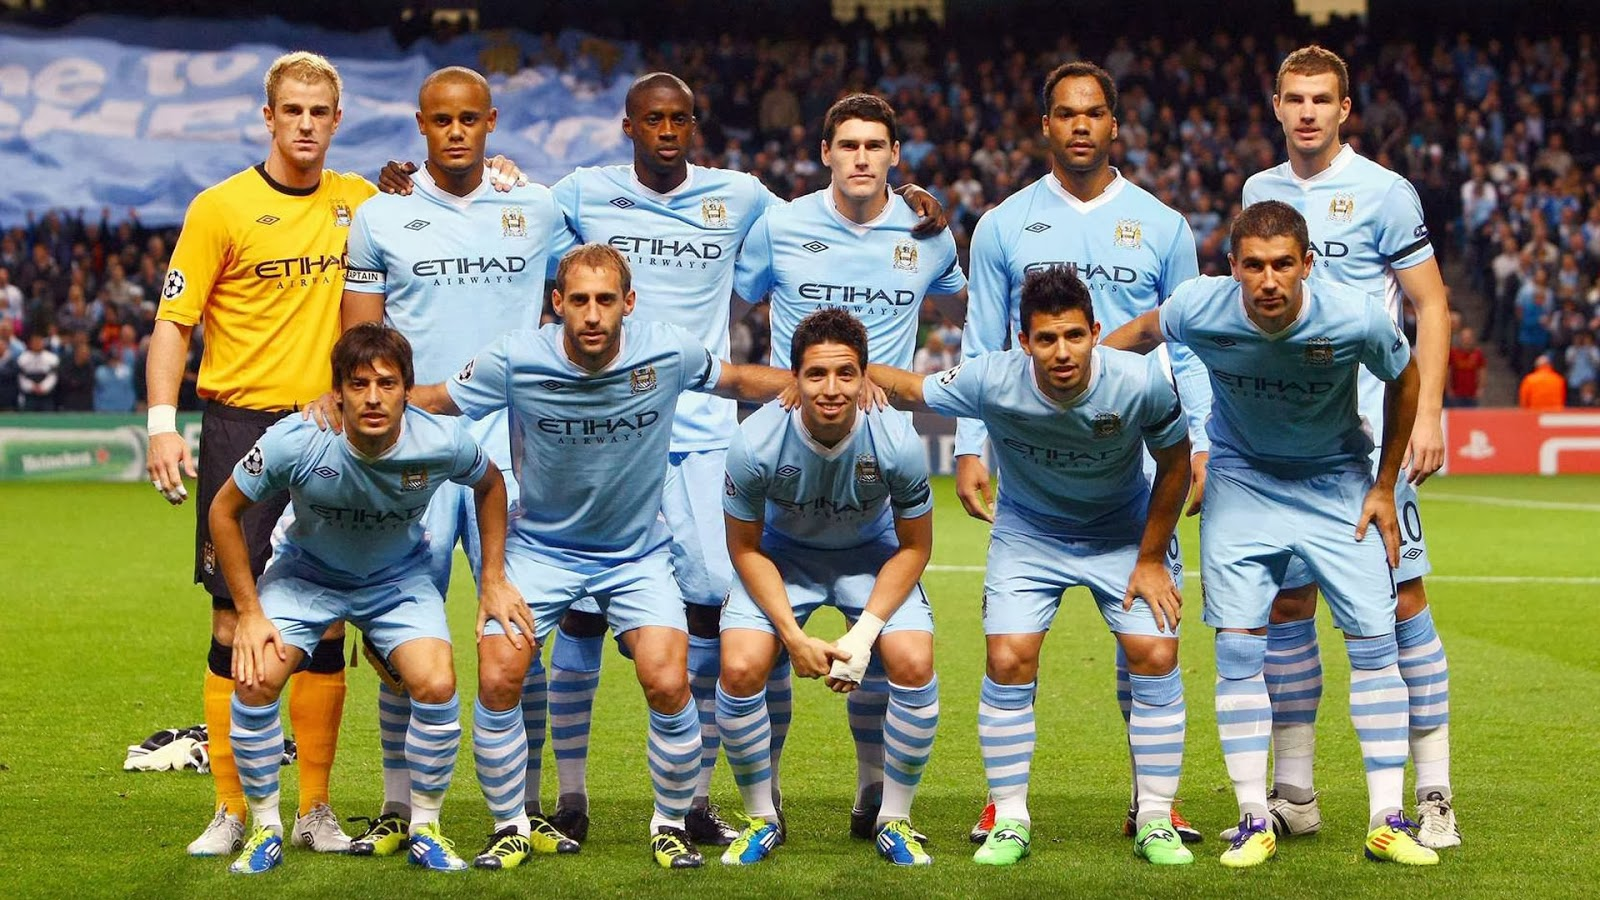 Fc manchester city 1080p hd wallpapers voltagebd Choice Image